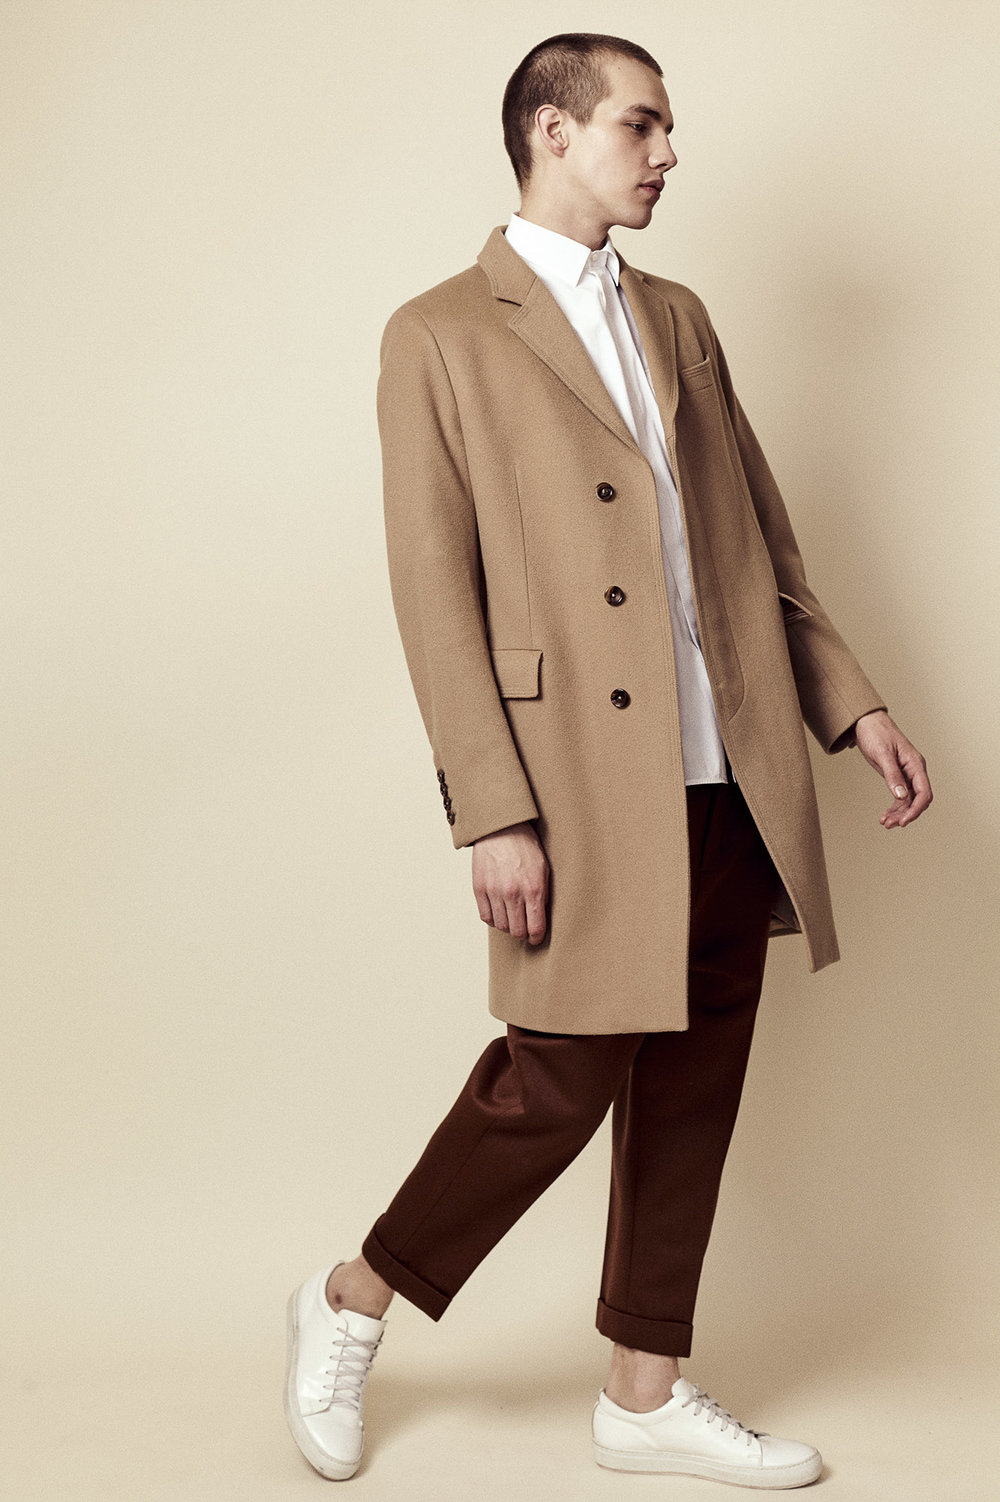 Gucci Camel overcoat, Neil Barrett shirt, Ami Paris trousers, Acne shoes